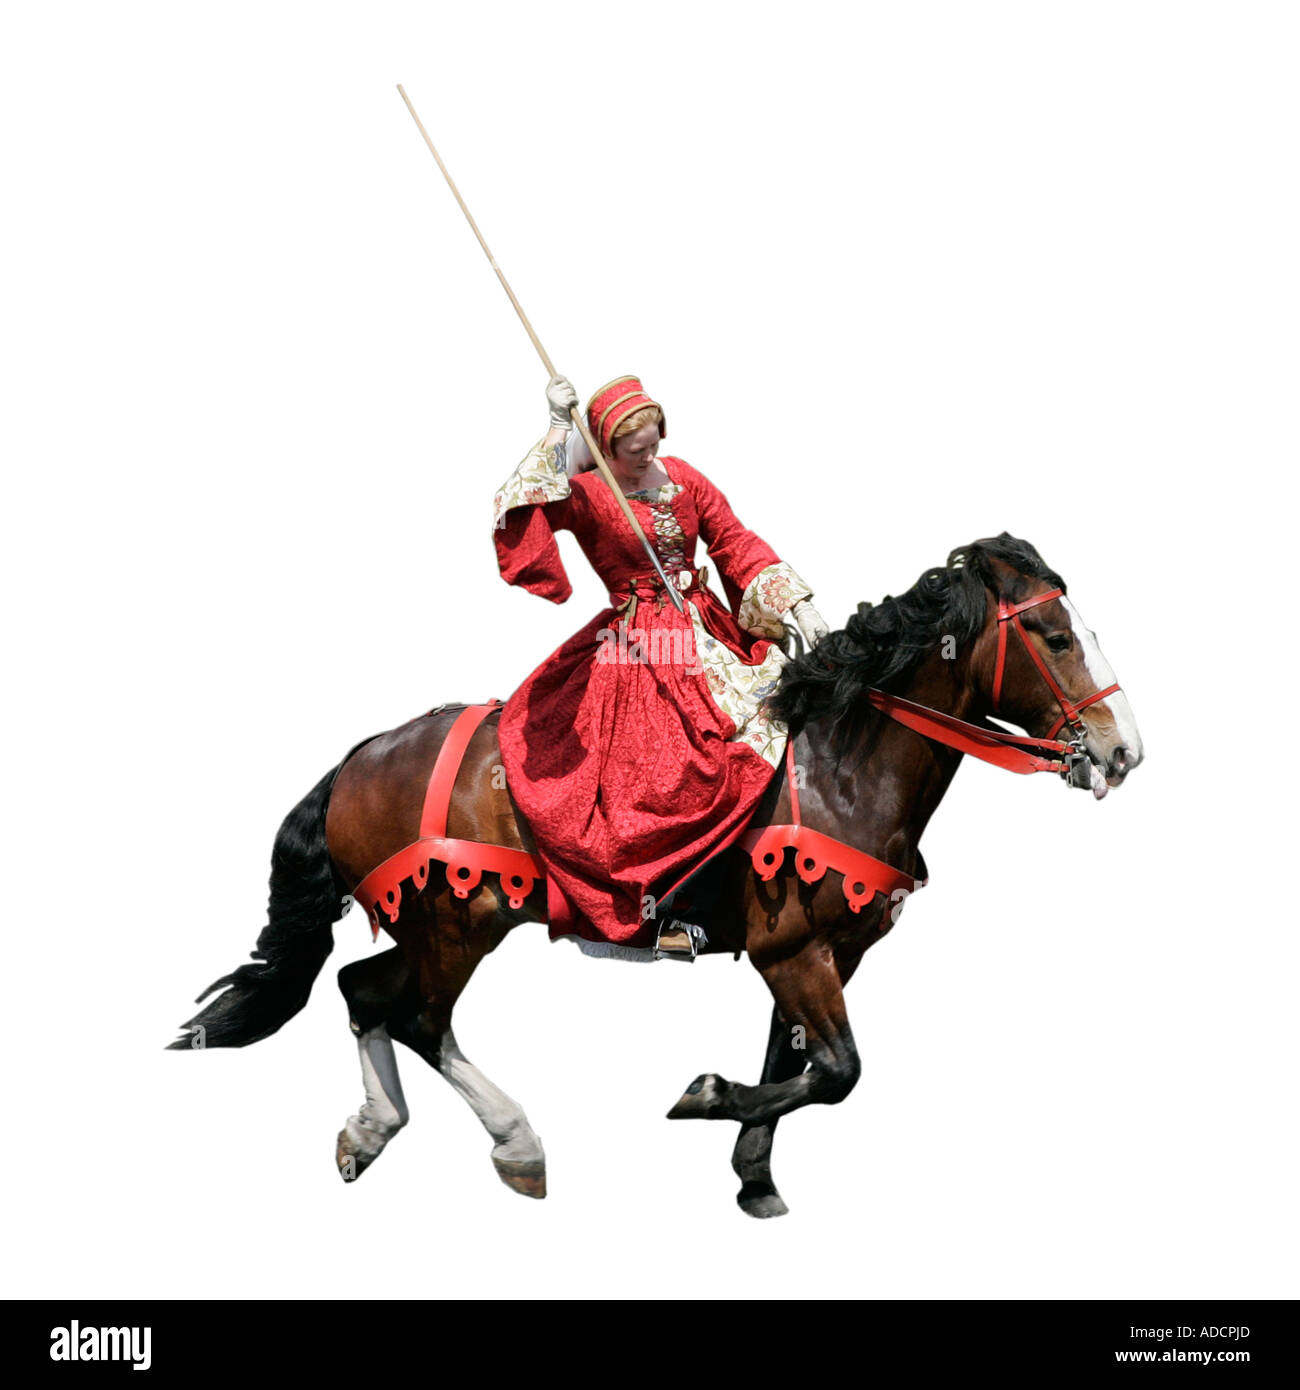 an introduction to the concept of jousting a medieval knight tournament These jousting knights made by a russian craftsman are a fine example of the extravagant regalia worn by knights and their horses in a jousting tournamen see question 8 medieval knights.